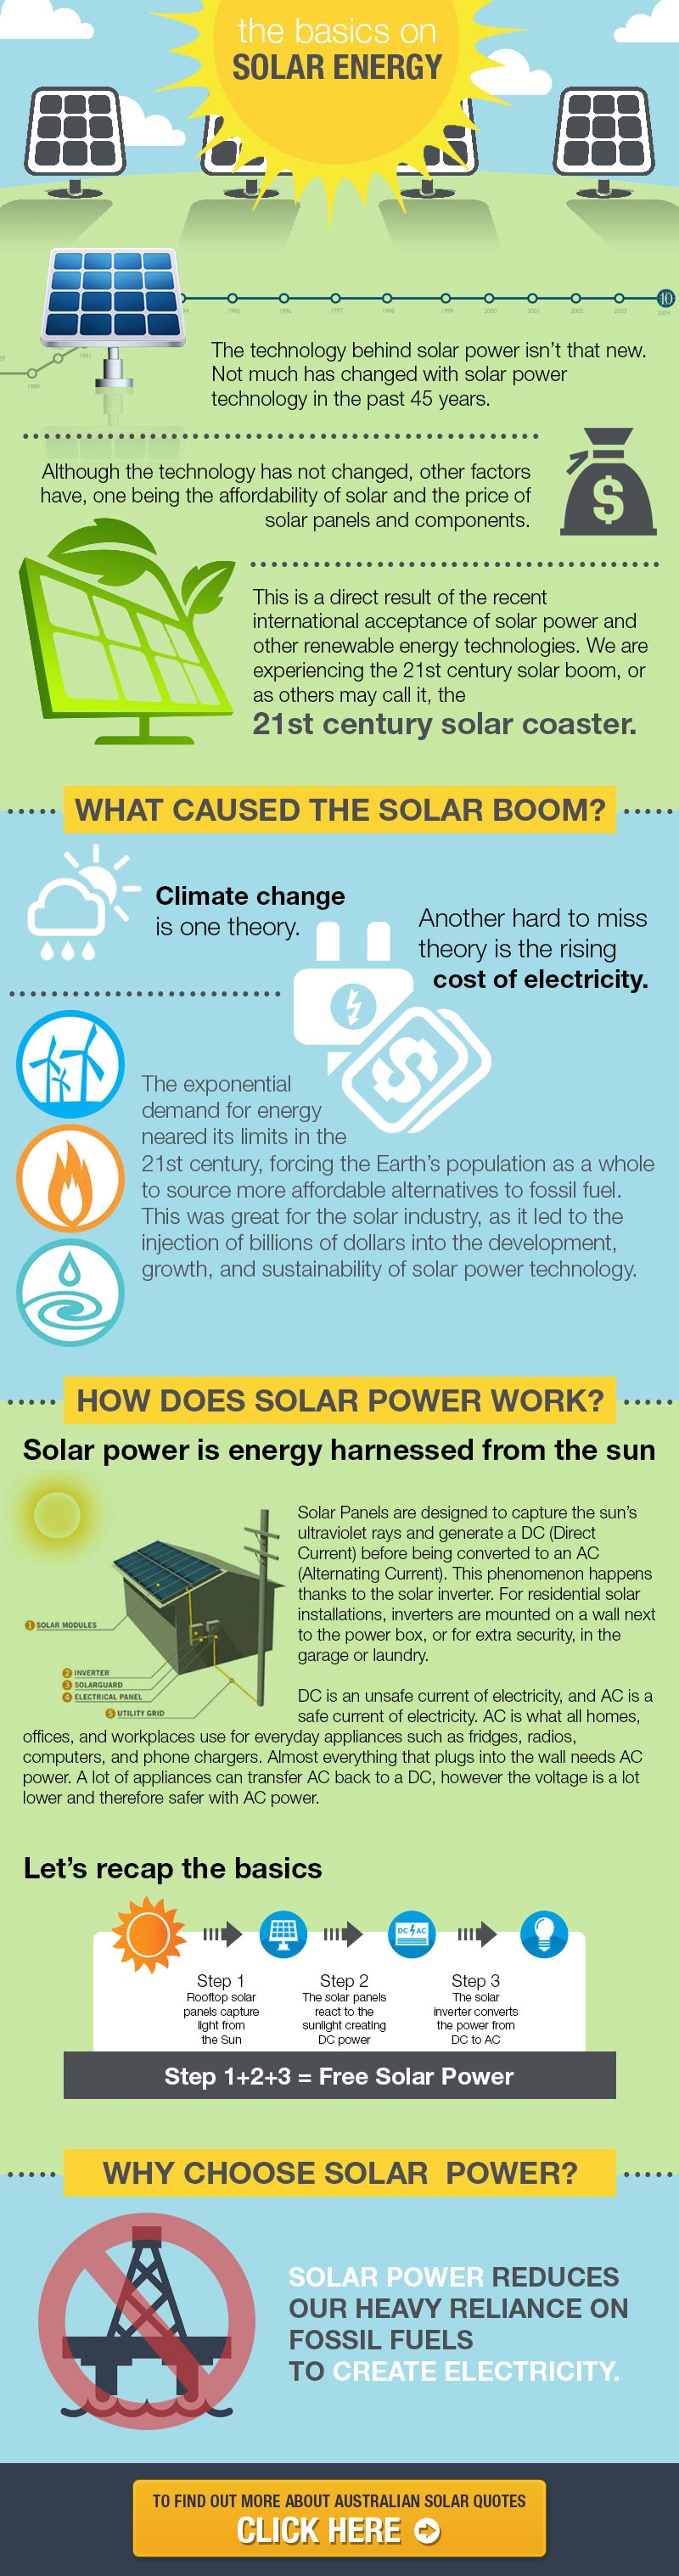 the-basics-on-solar-energy-Infographic